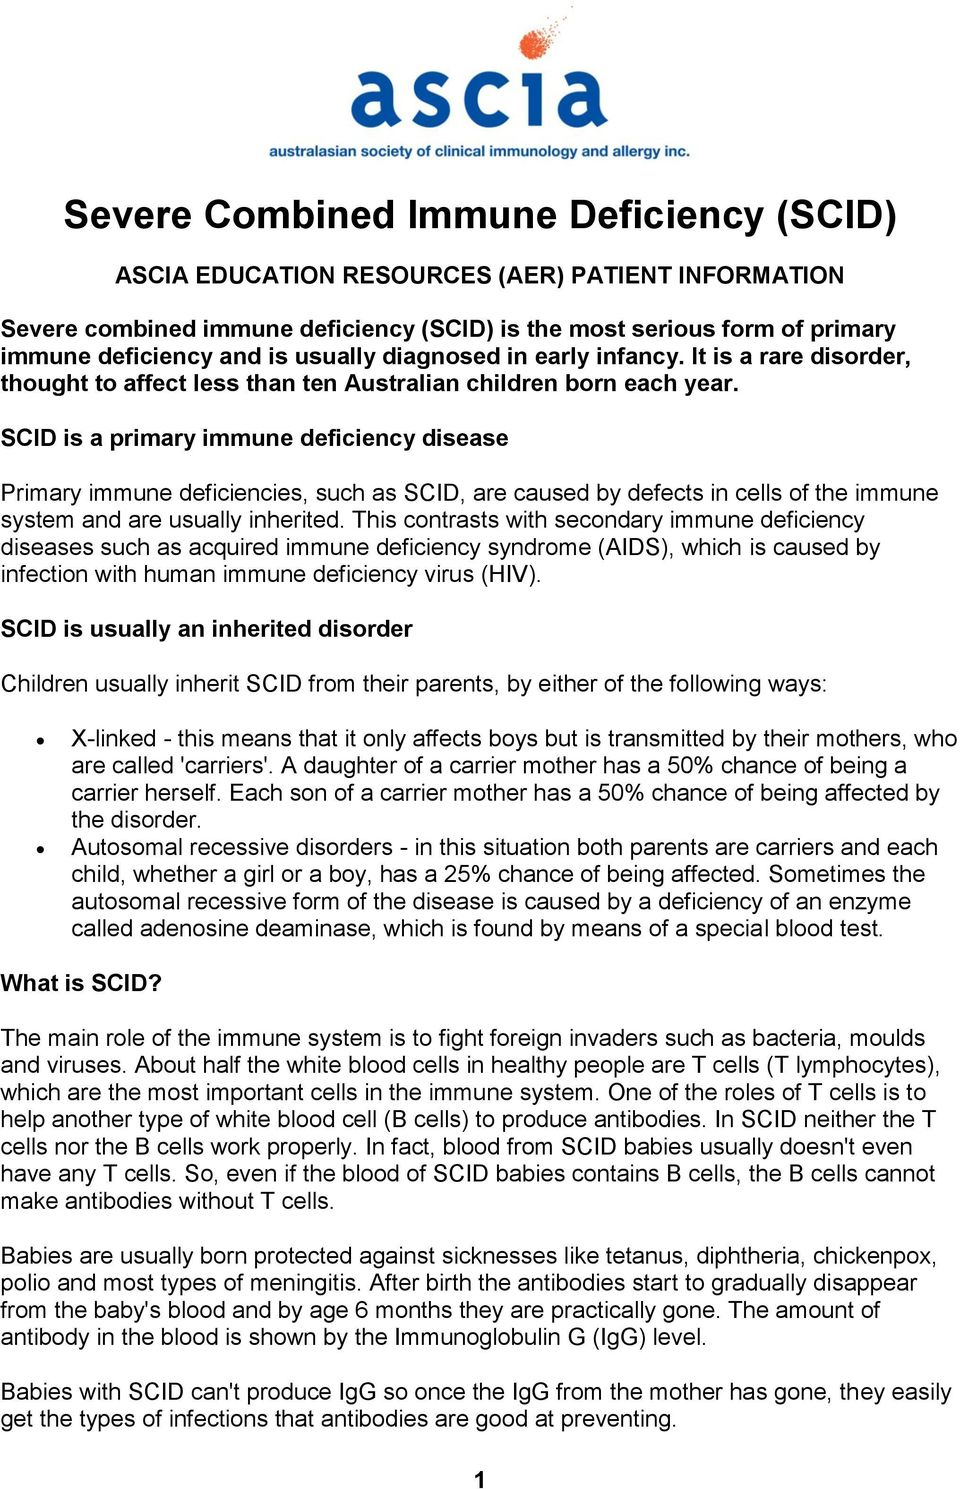 SCID is a primary immune deficiency disease Primary immune deficiencies, such as SCID, are caused by defects in cells of the immune system and are usually inherited.